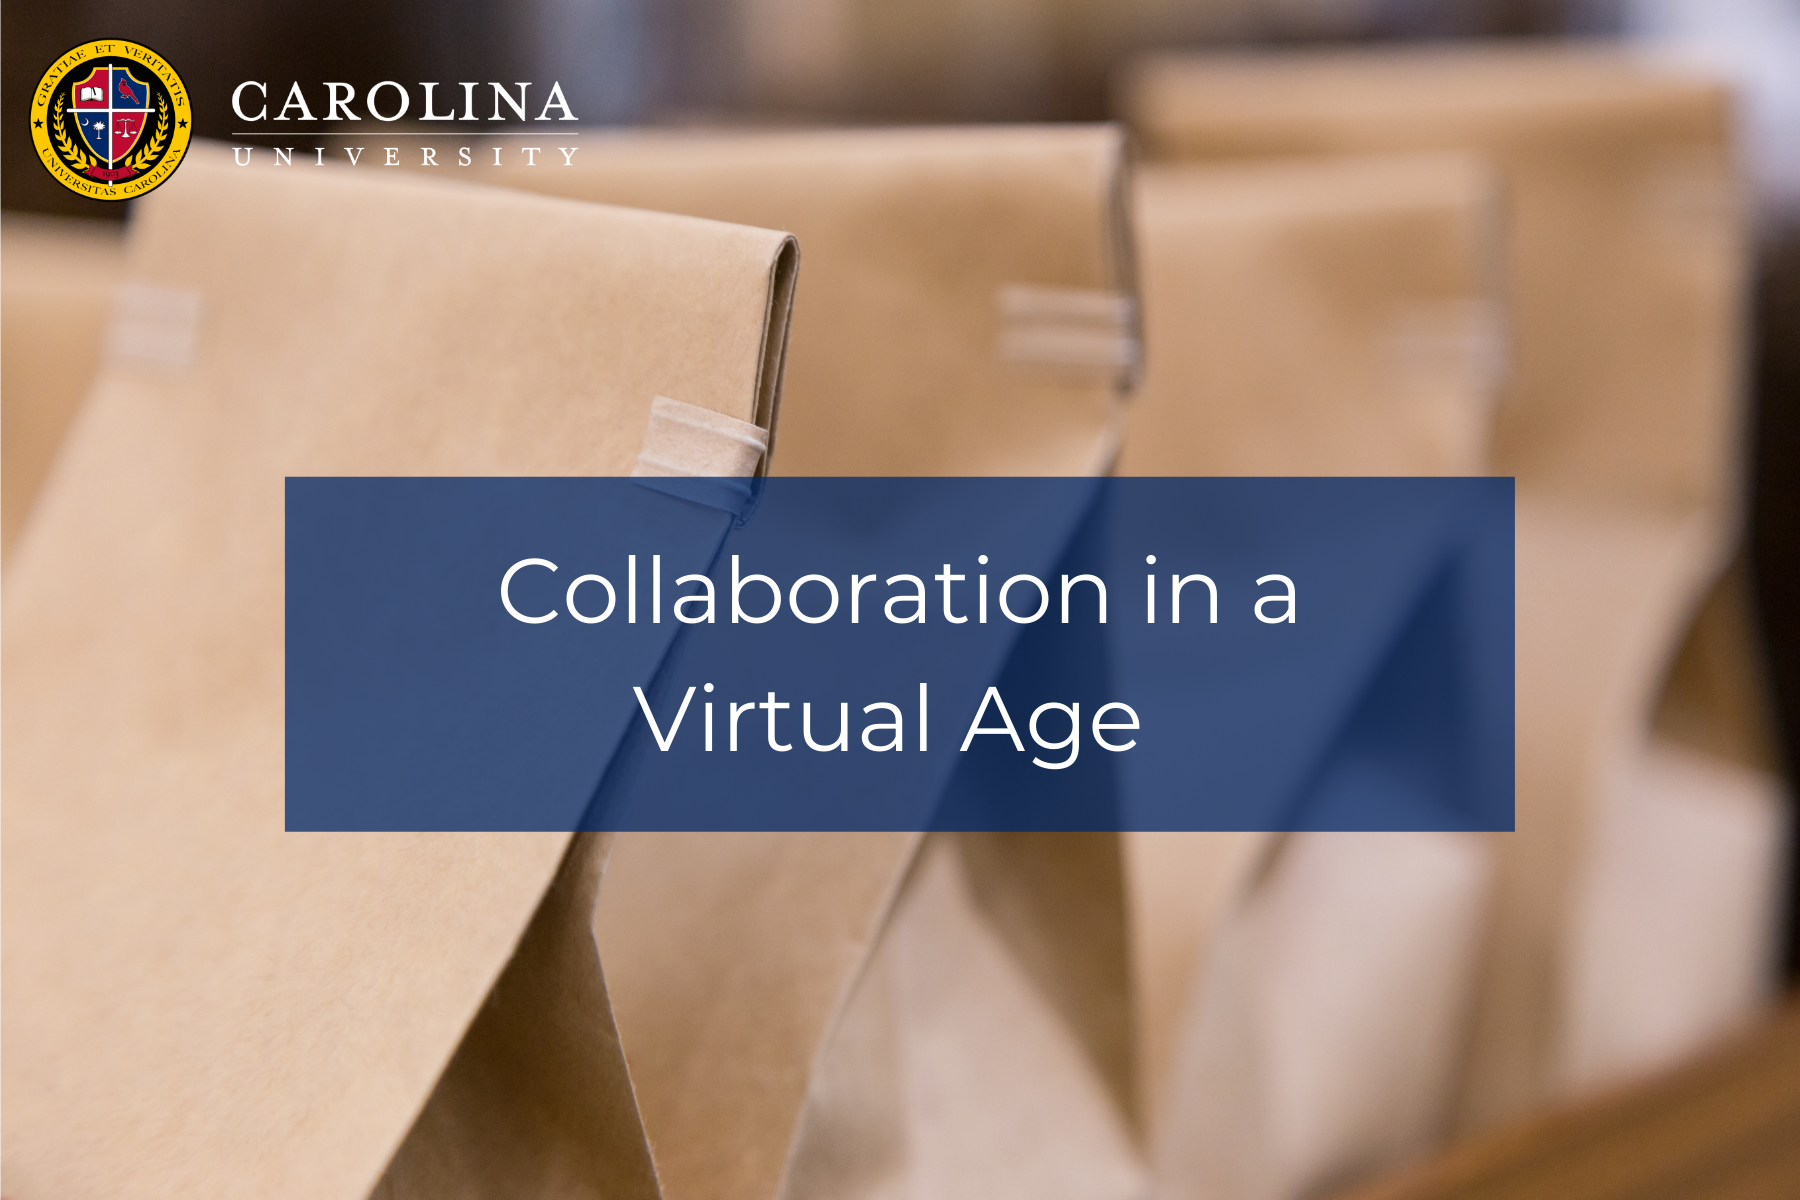 Collaboration in a Virtual Age